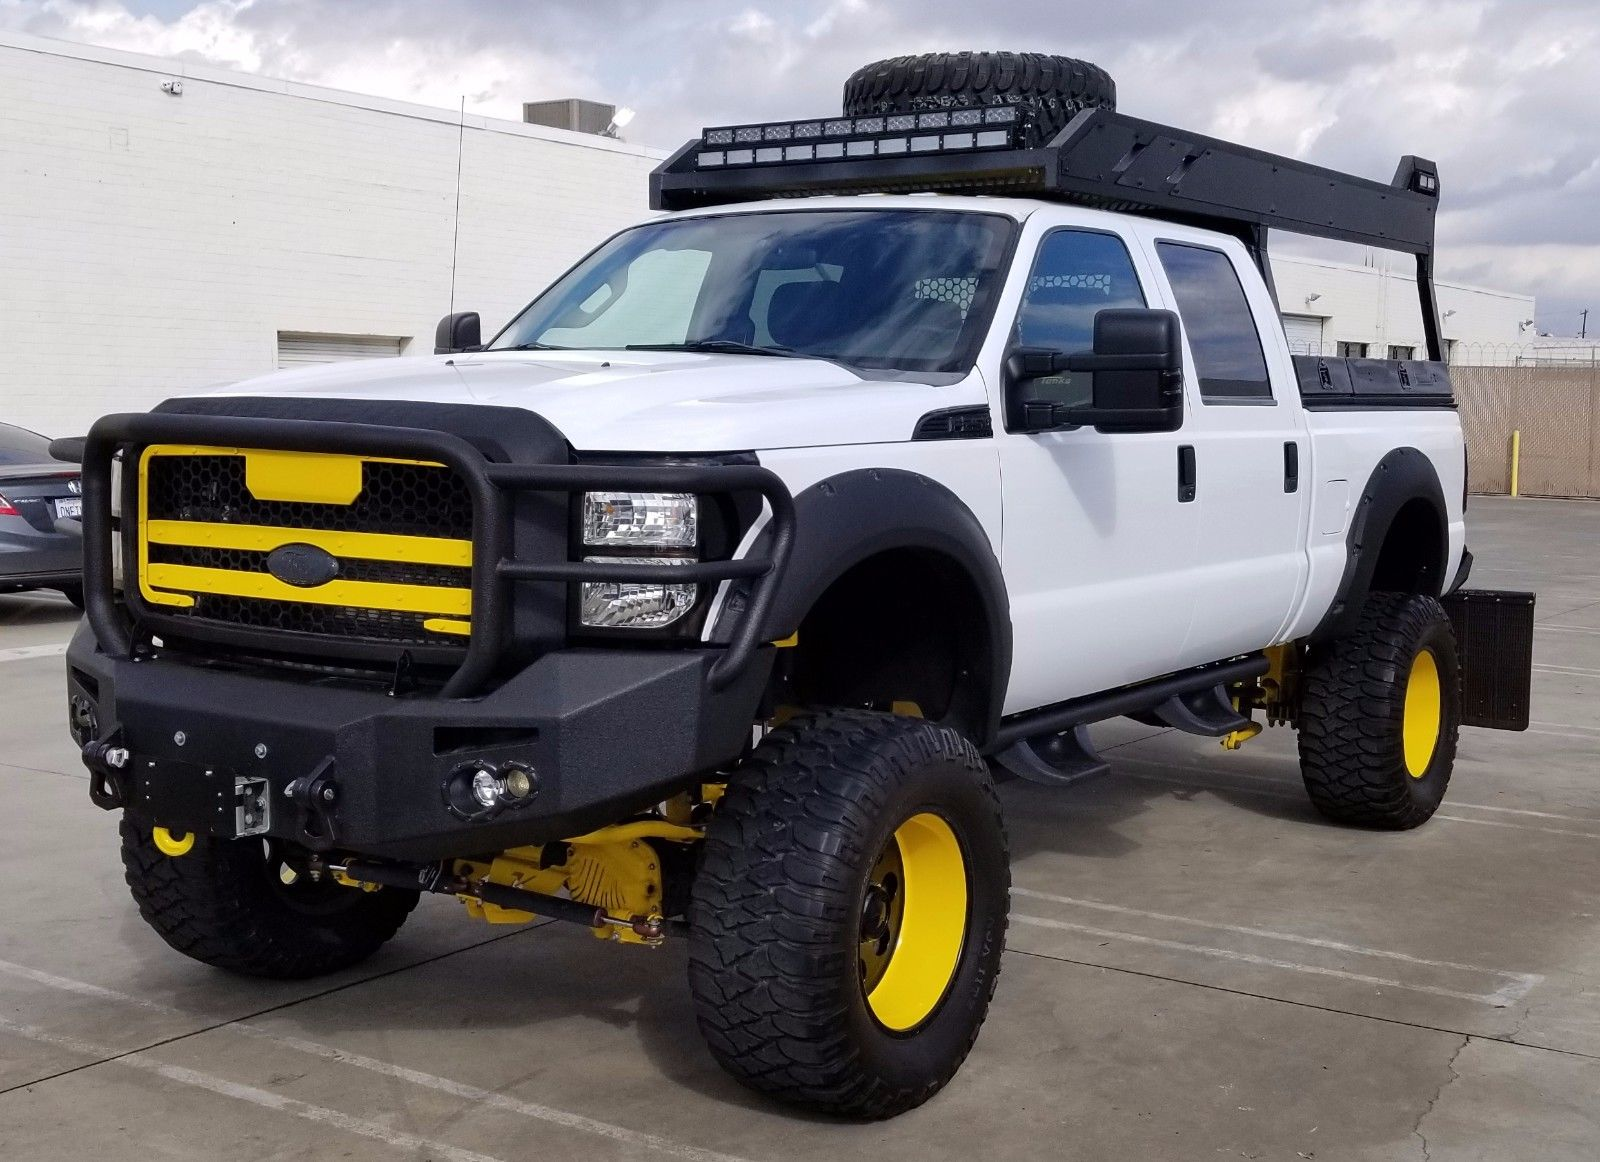 Low Mileage Ford F Xlt Monster Truck For Sale